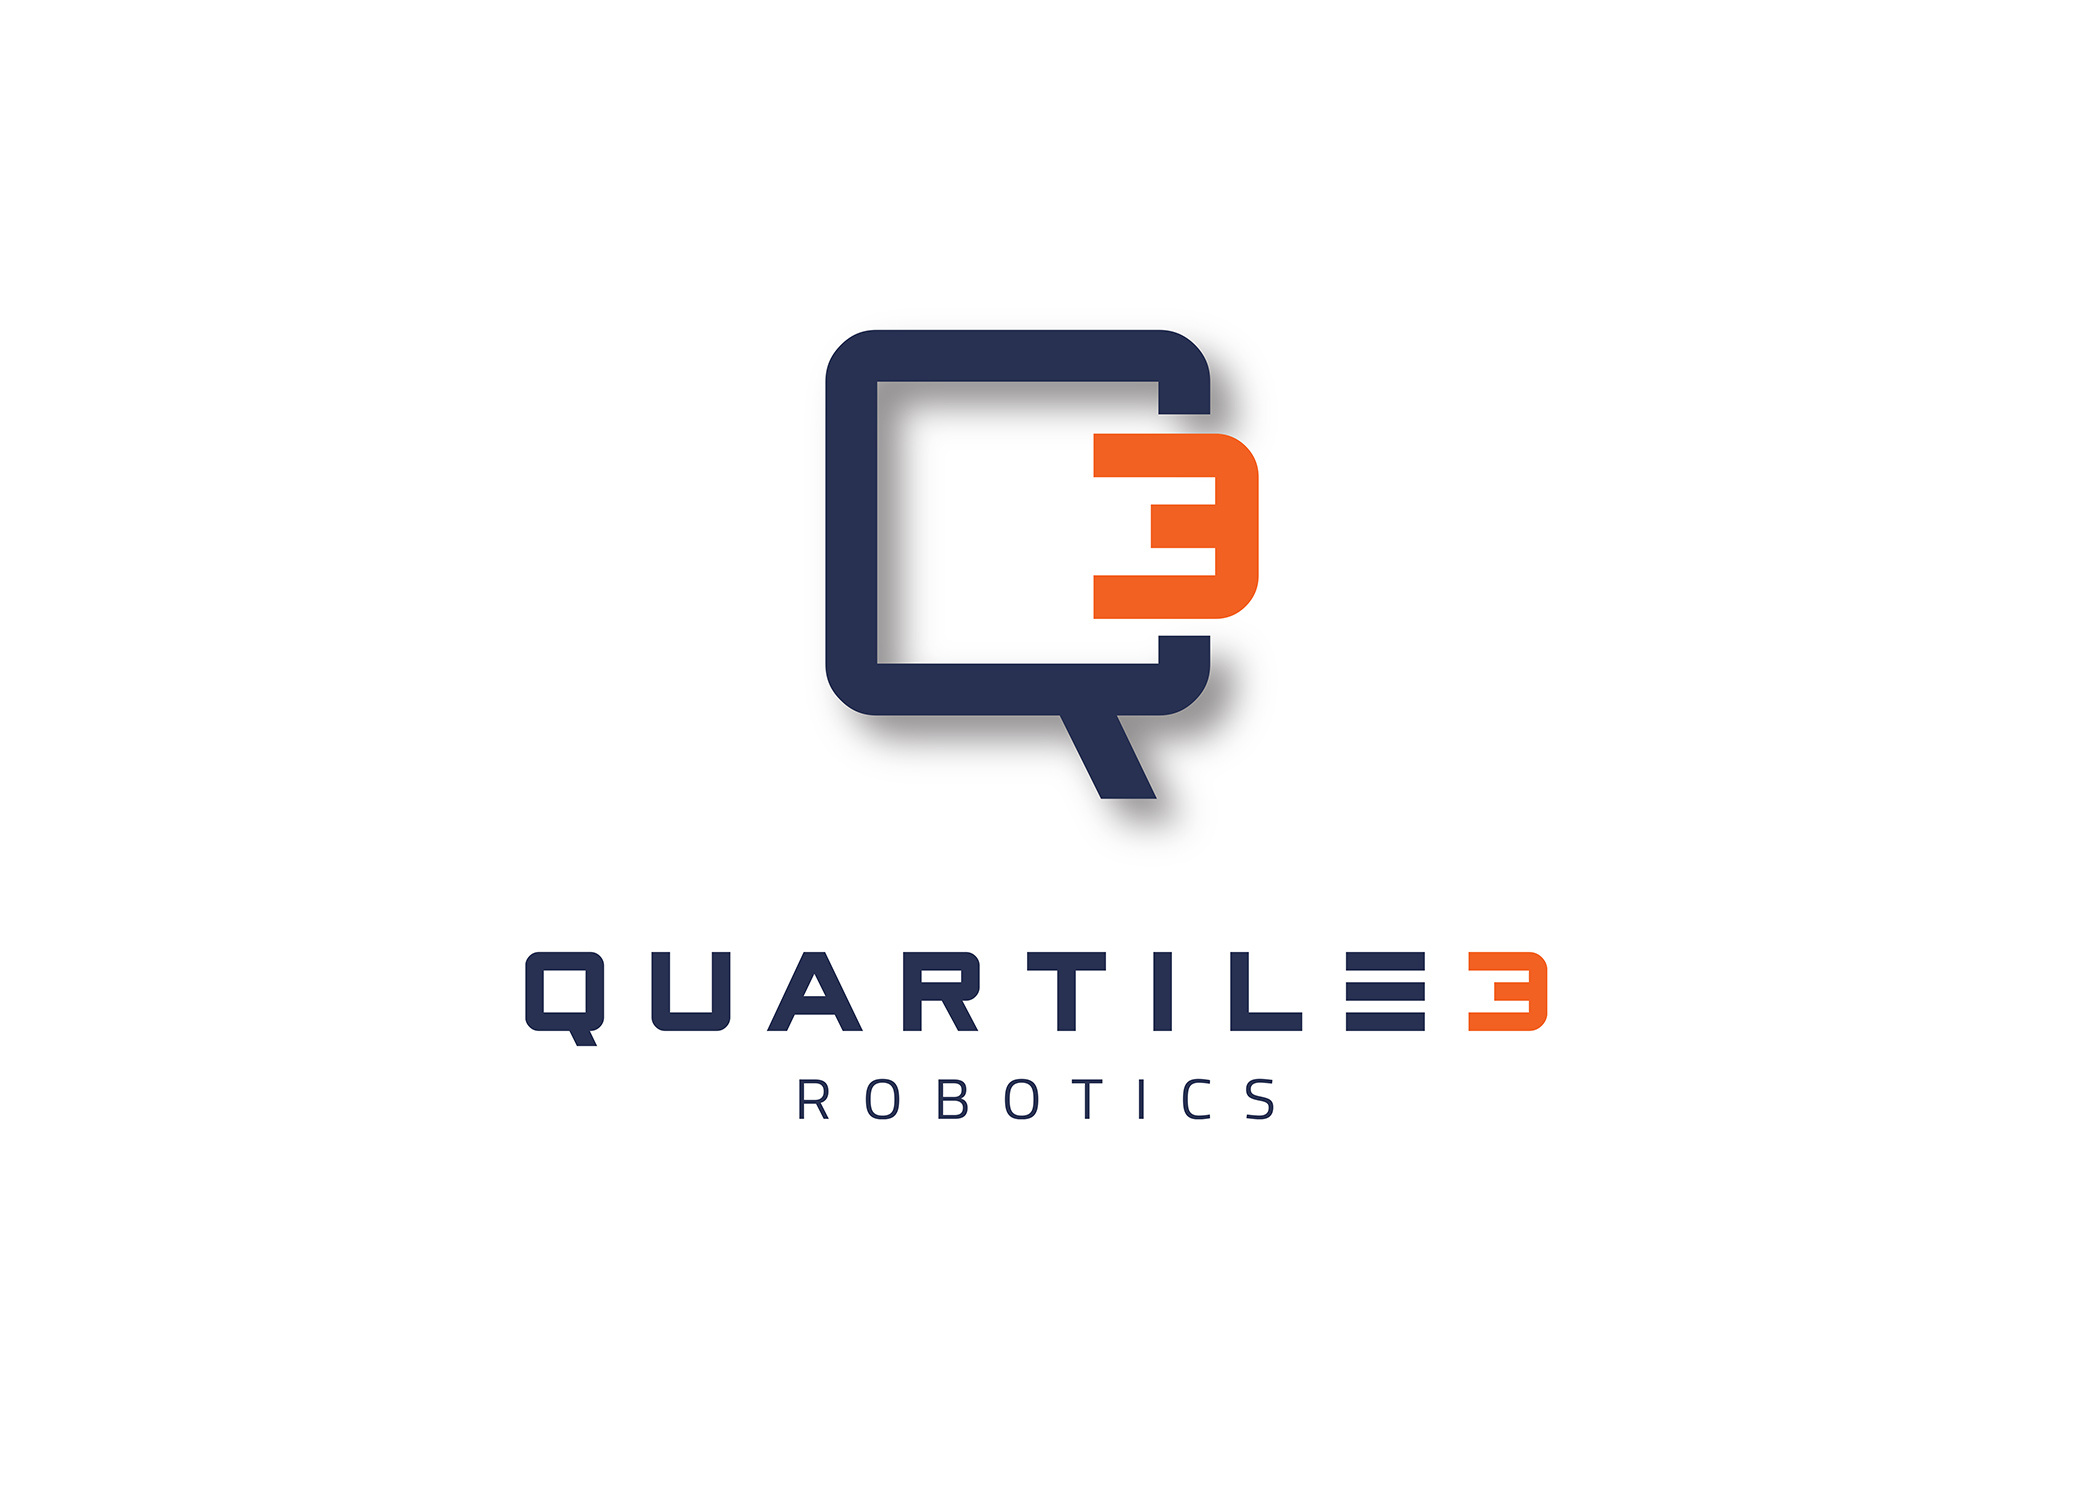 Quartile 3 Robotics droid Q3 logo design in orange and navy, with the 3 plugged into the Q like a socket.